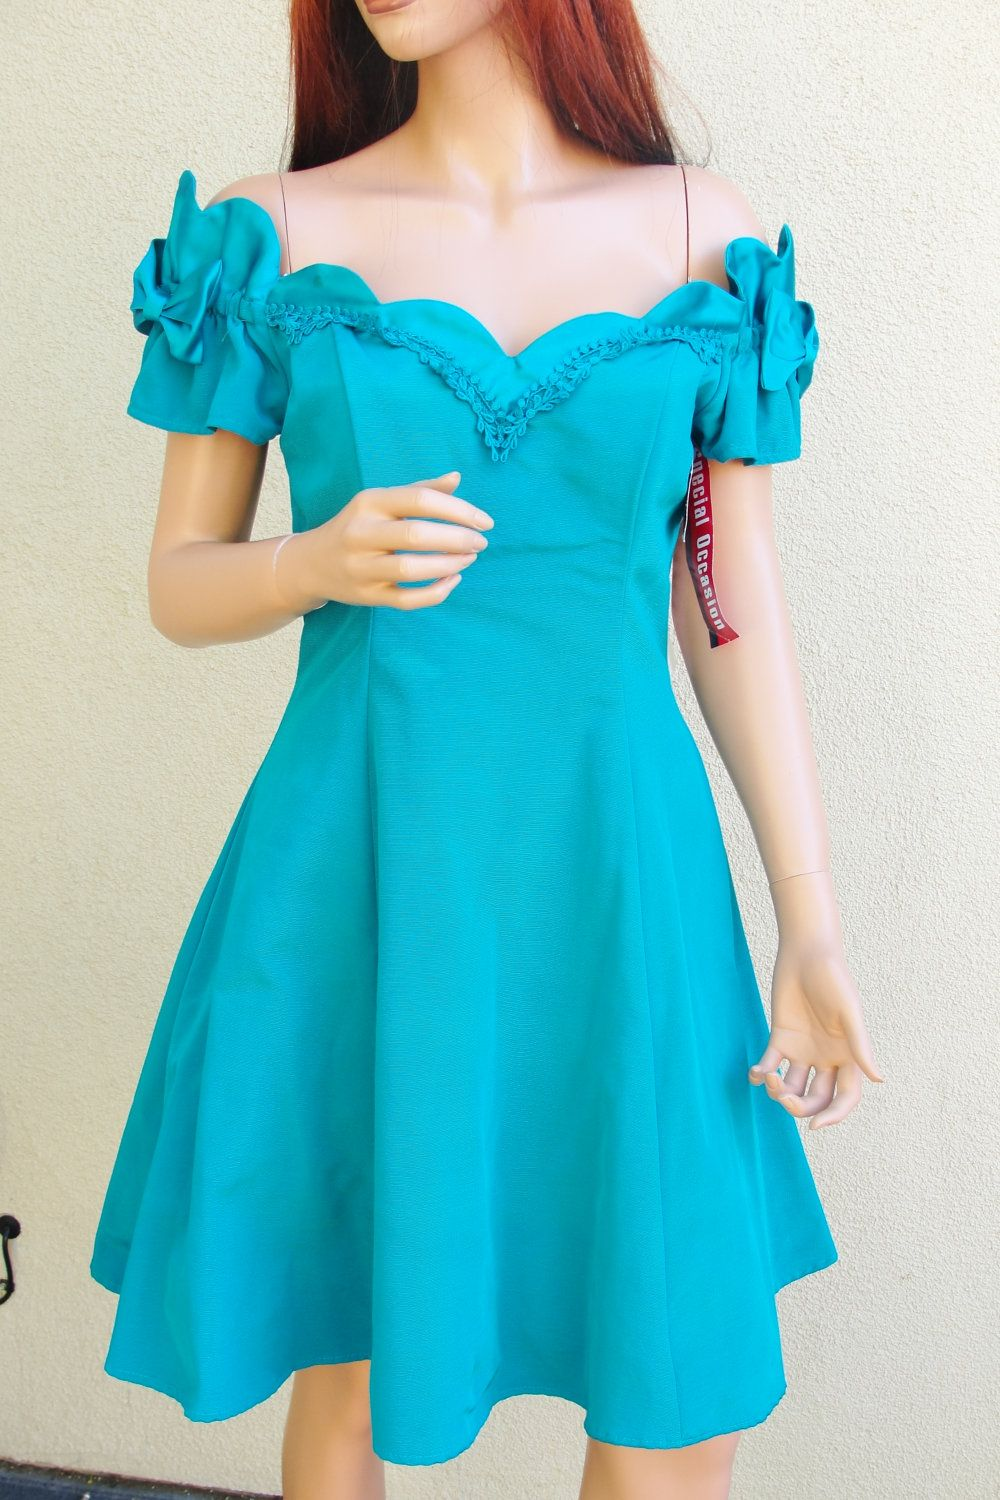 S size vintage off the shooulder prom dress by niki